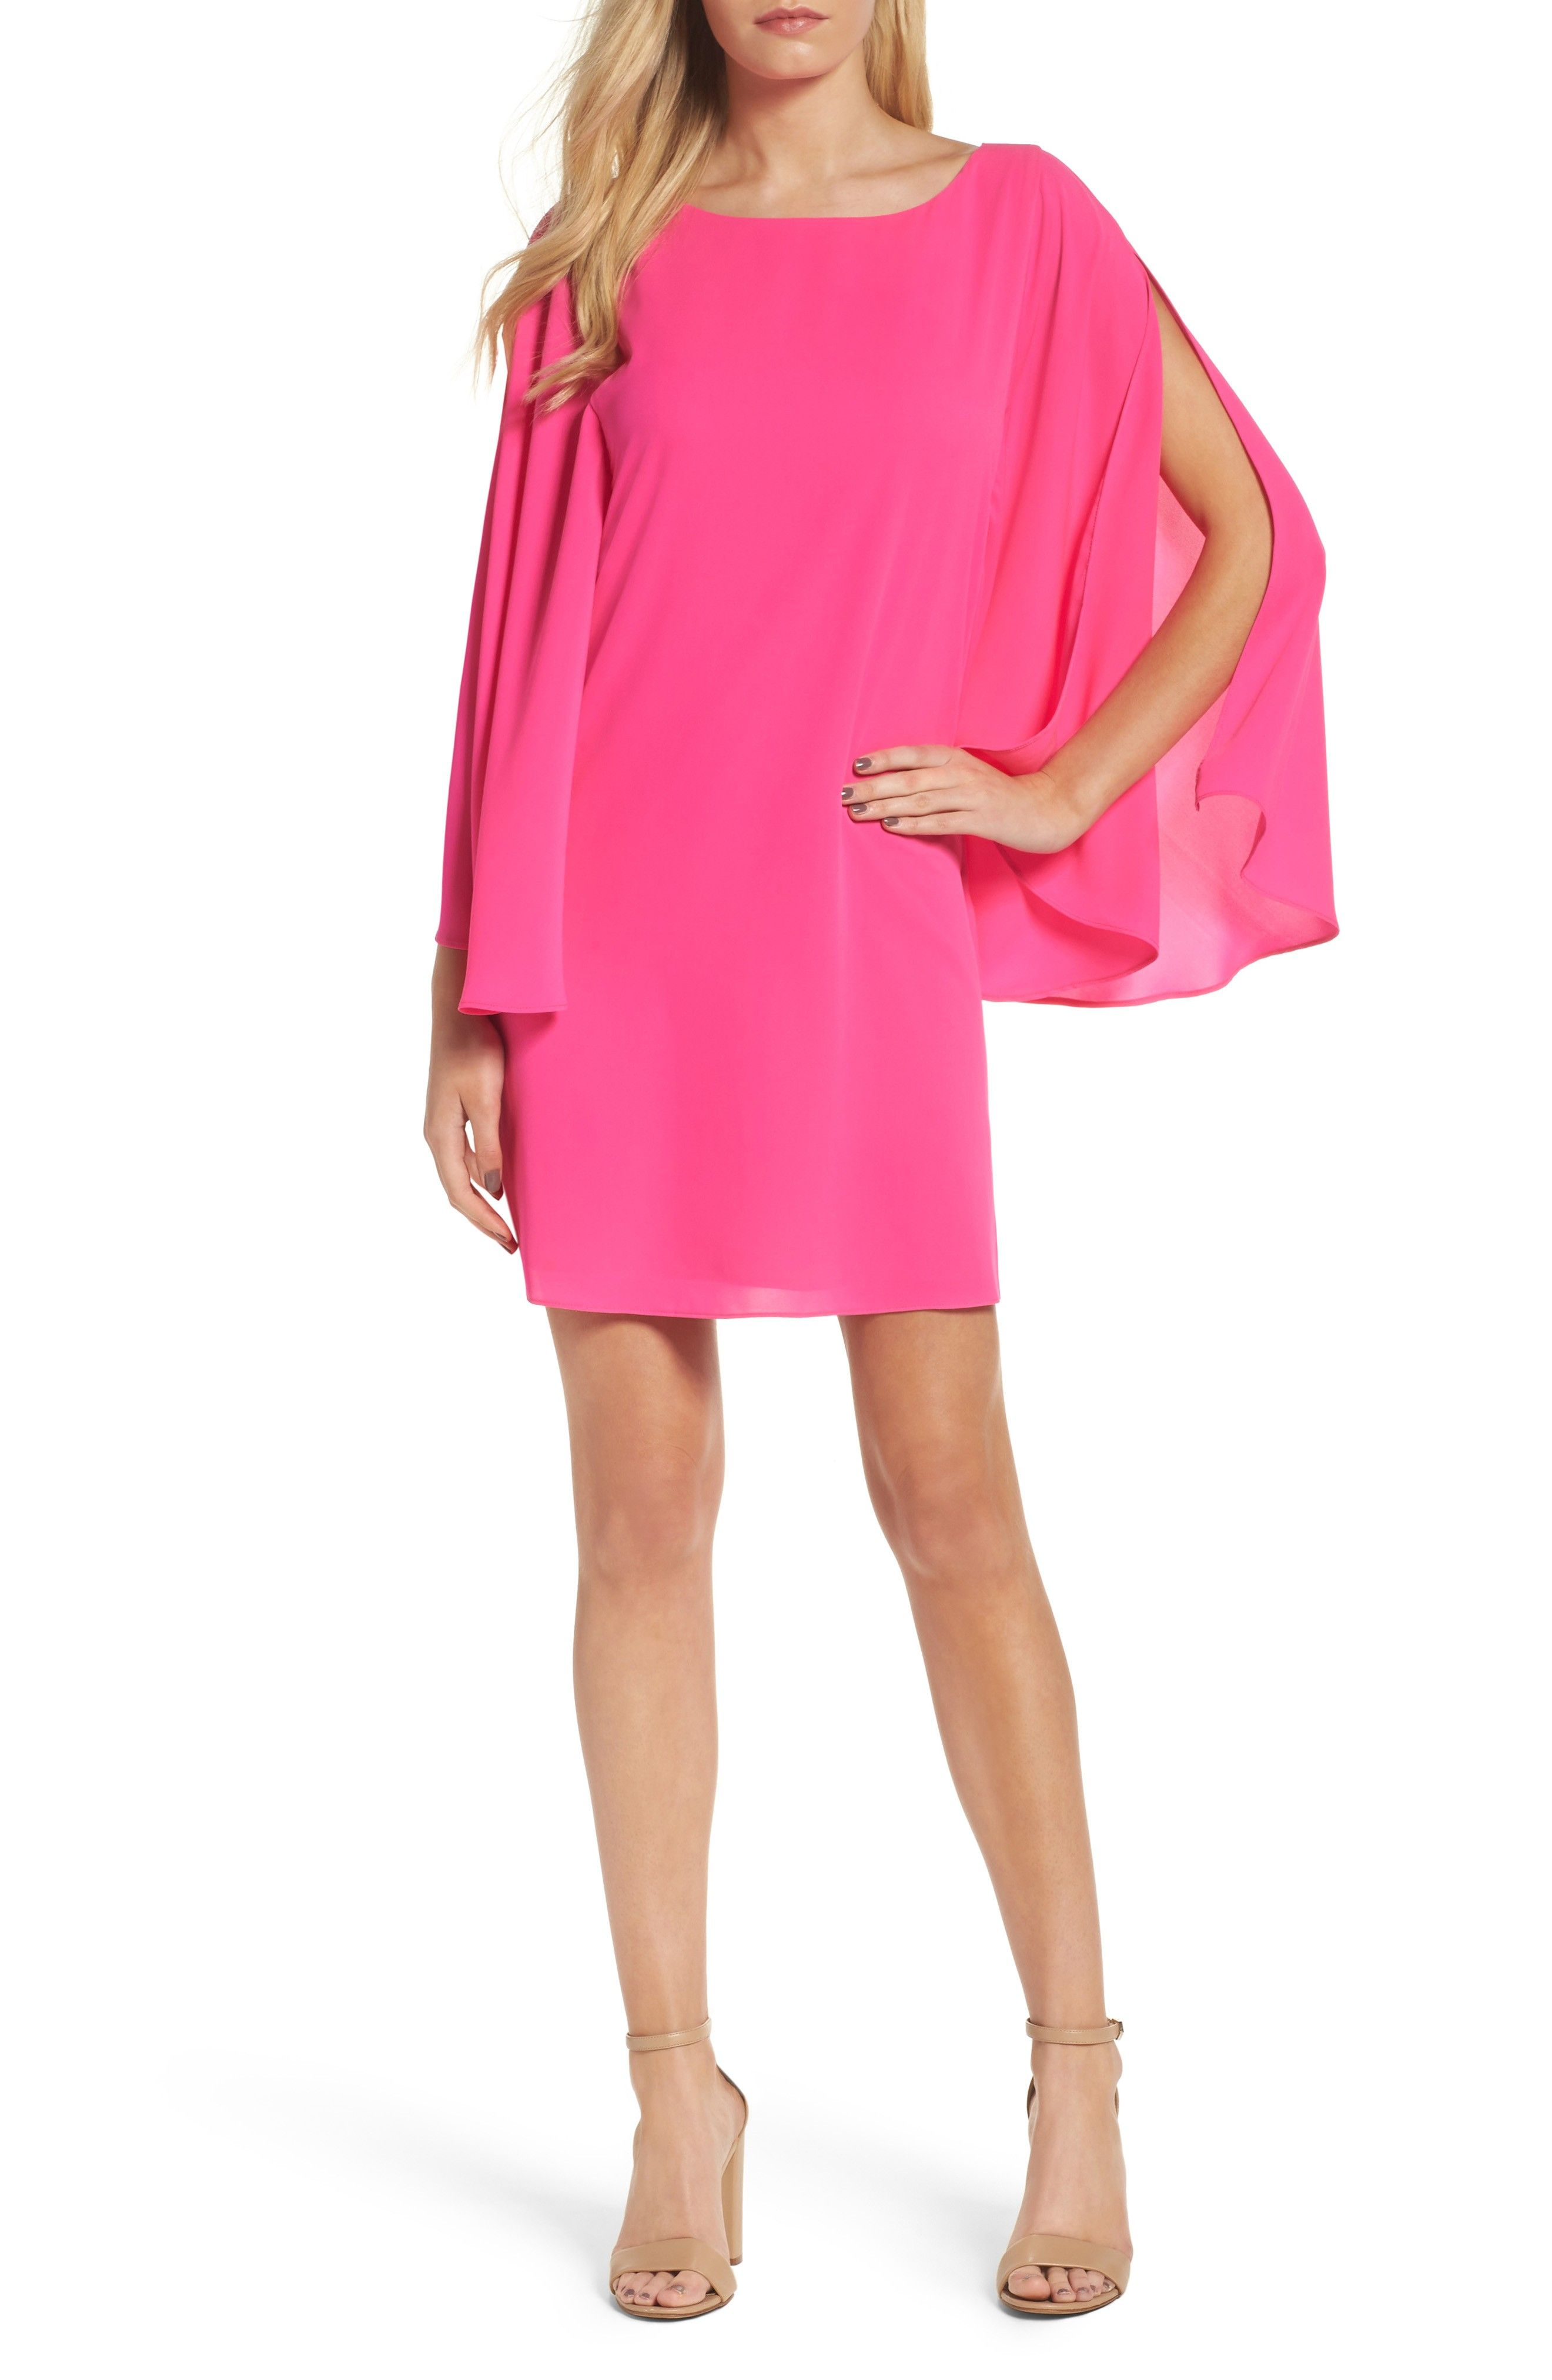 Shop This Week 39 S 40 Best Summer Vacation Styles Including Styles With Pops Of Color Gorgeous Jumpsui Shift Dress Nordstrom Dresses Work Dresses For Women [ 4048 x 2640 Pixel ]